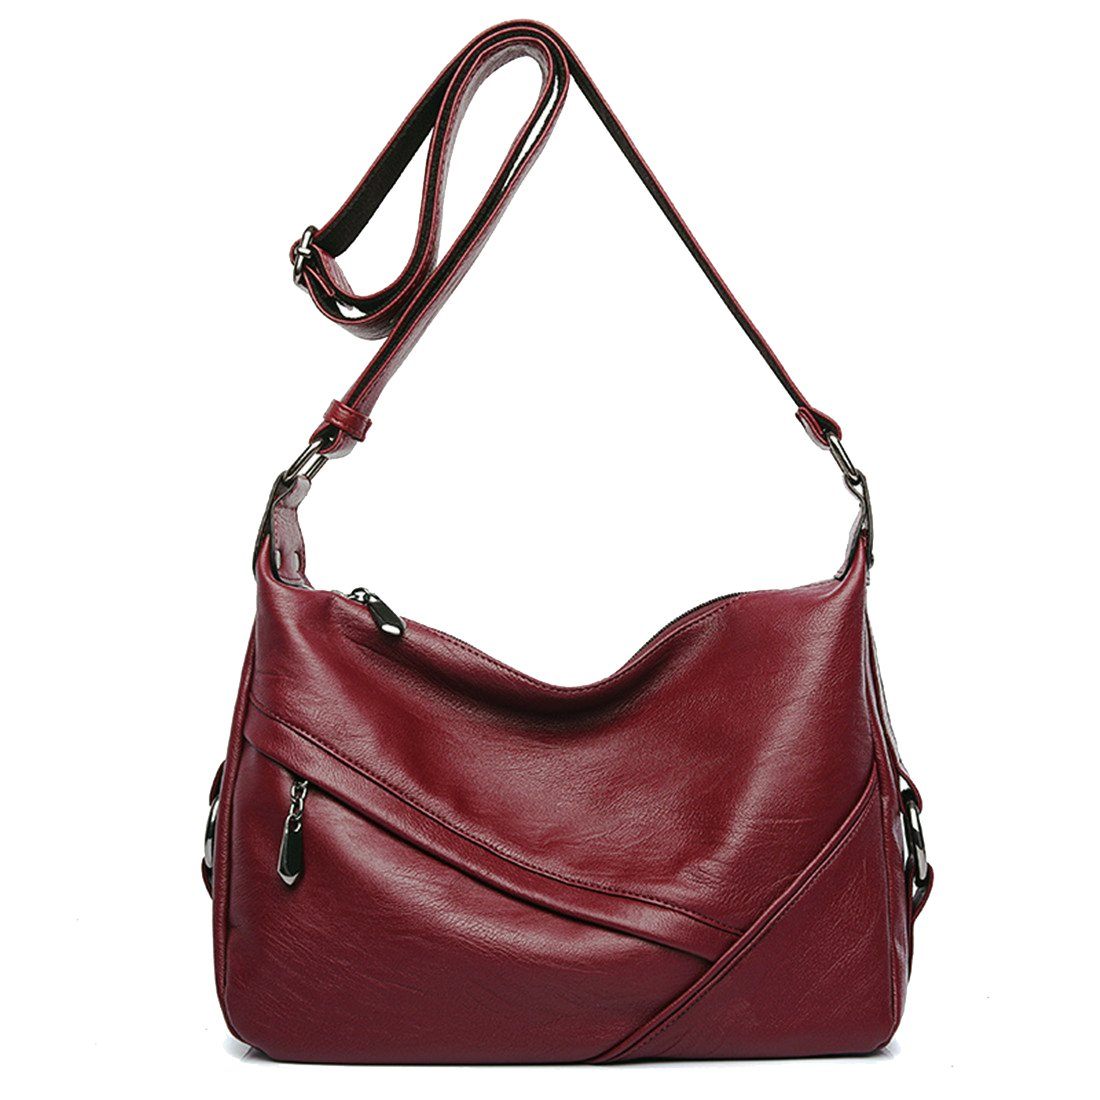 Women's Retro Casual Hobo Shoulder Bags Soft PU Leather Crossbody Bags for Women (red)